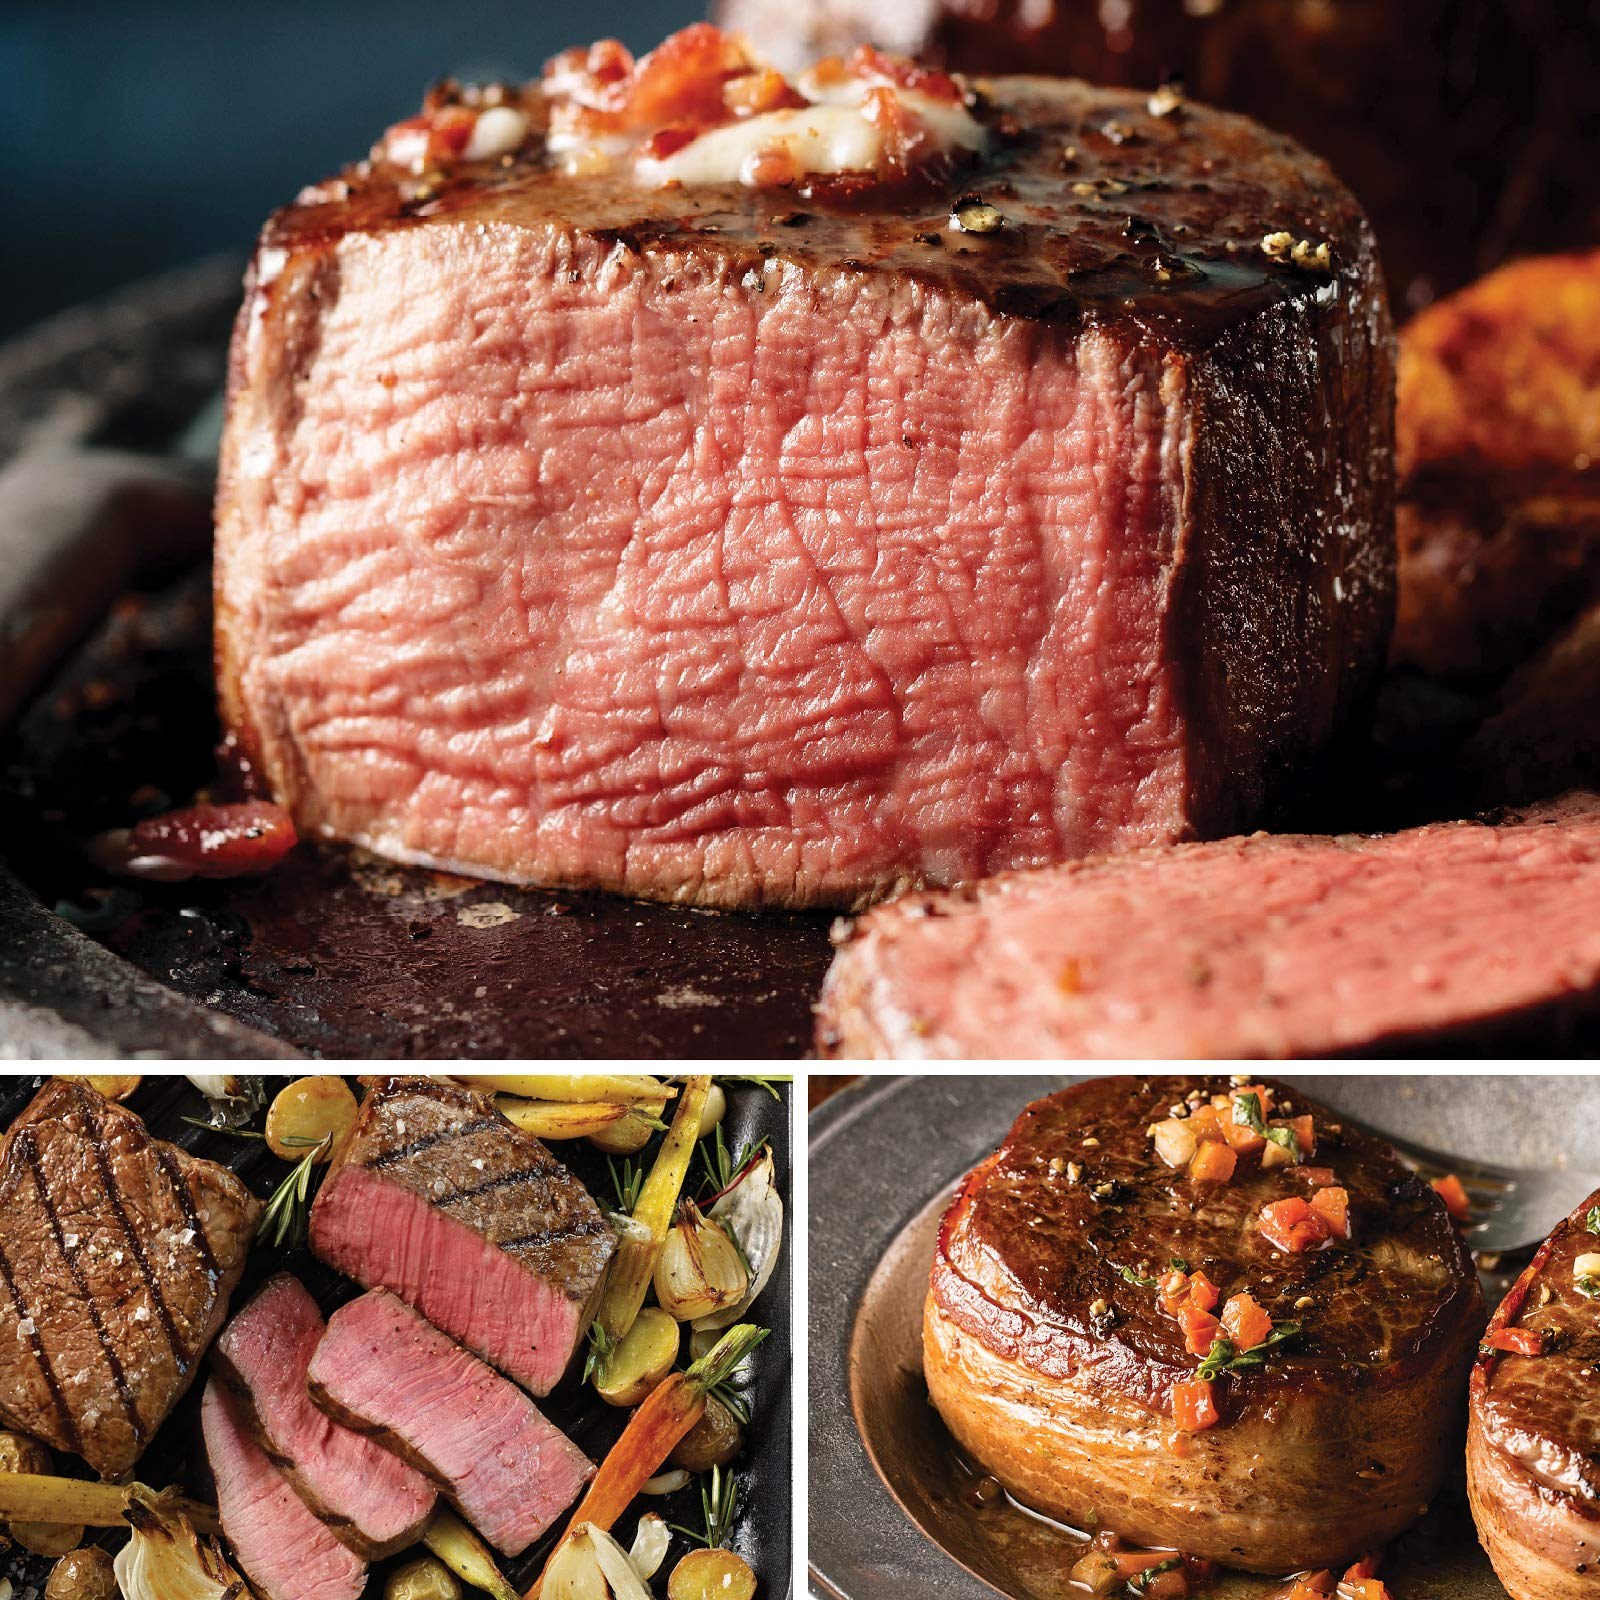 Omaha Steaks Sizzling Steak Sampler (12-Piece with Filet Mignons, Top Sirloins, and Bacon-Wrapped Tri-Tips)